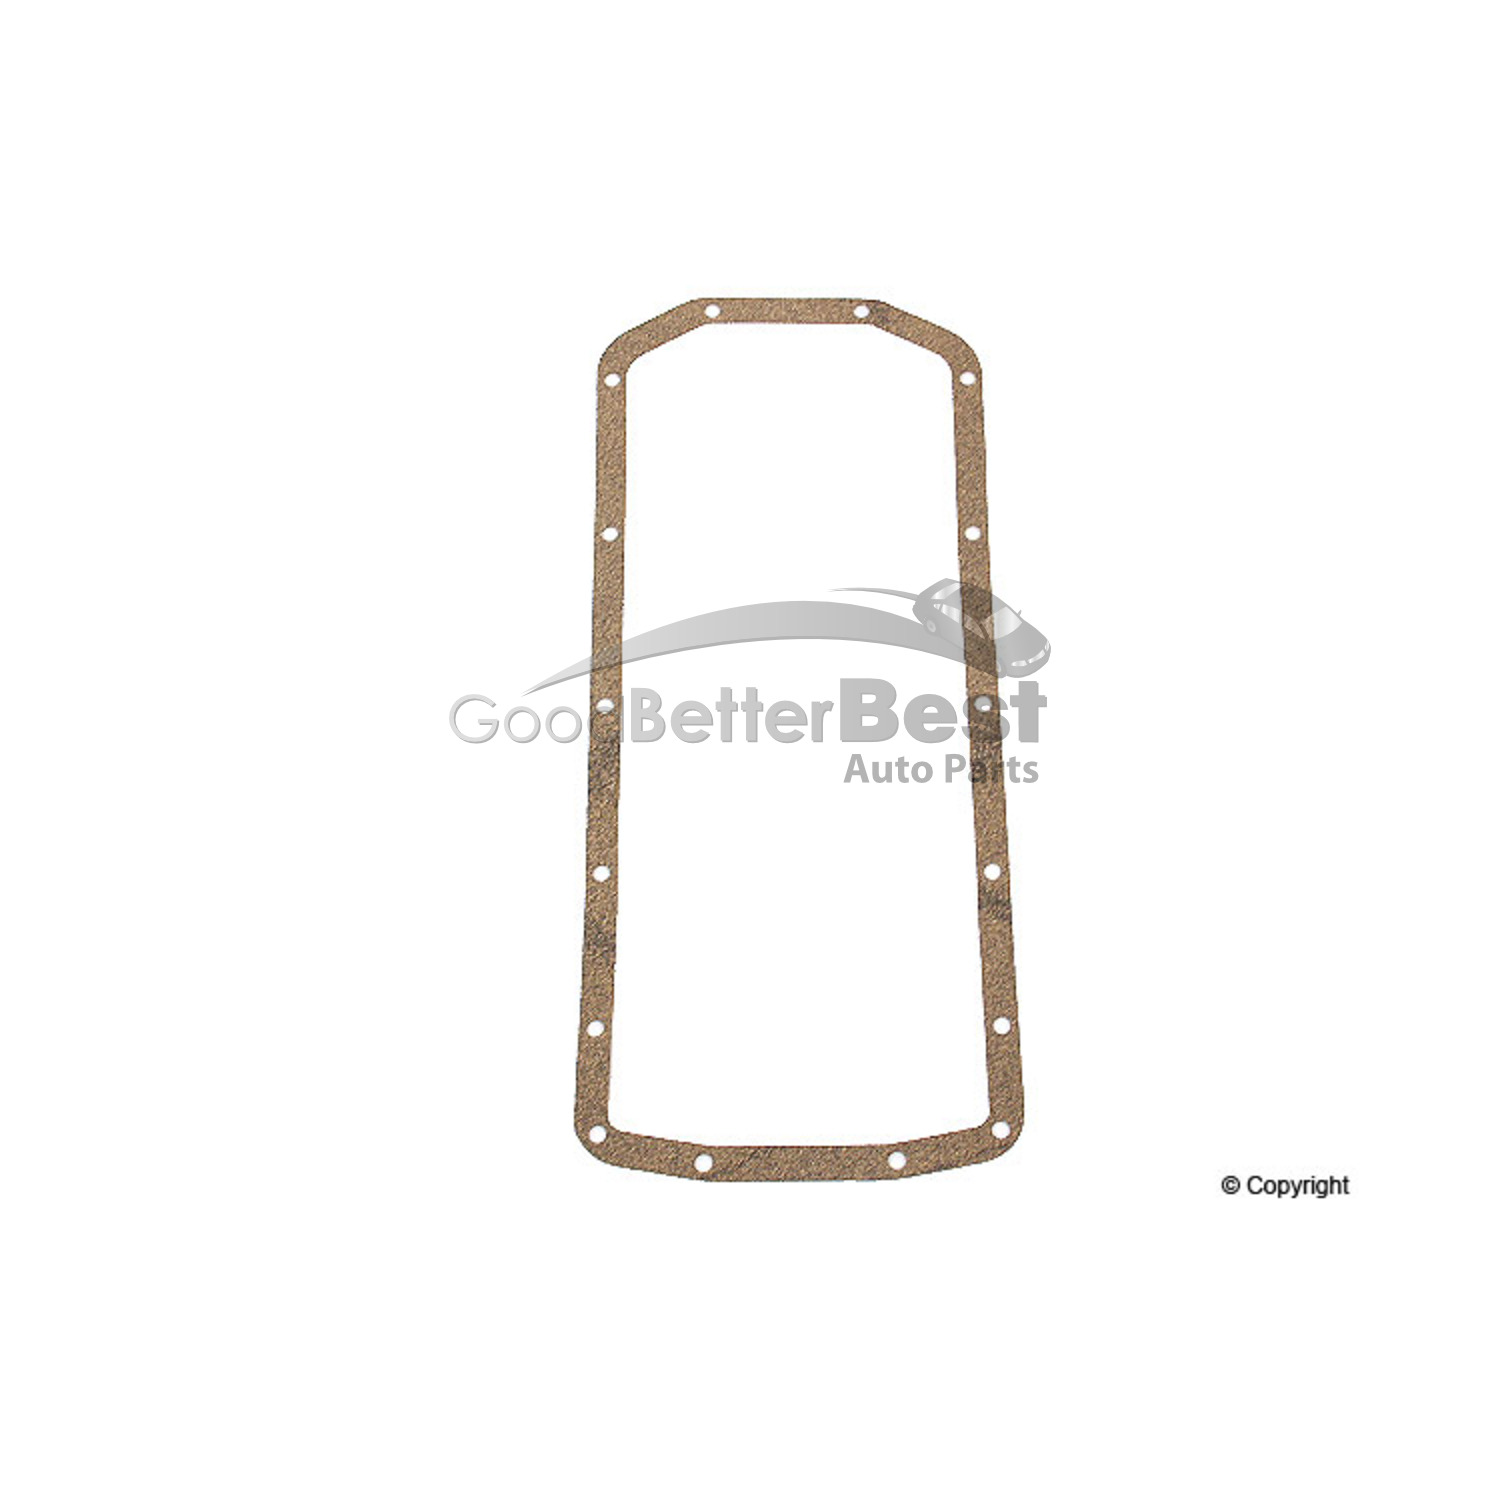 One New Allmakes Engine Oil Pan Gasket For Land